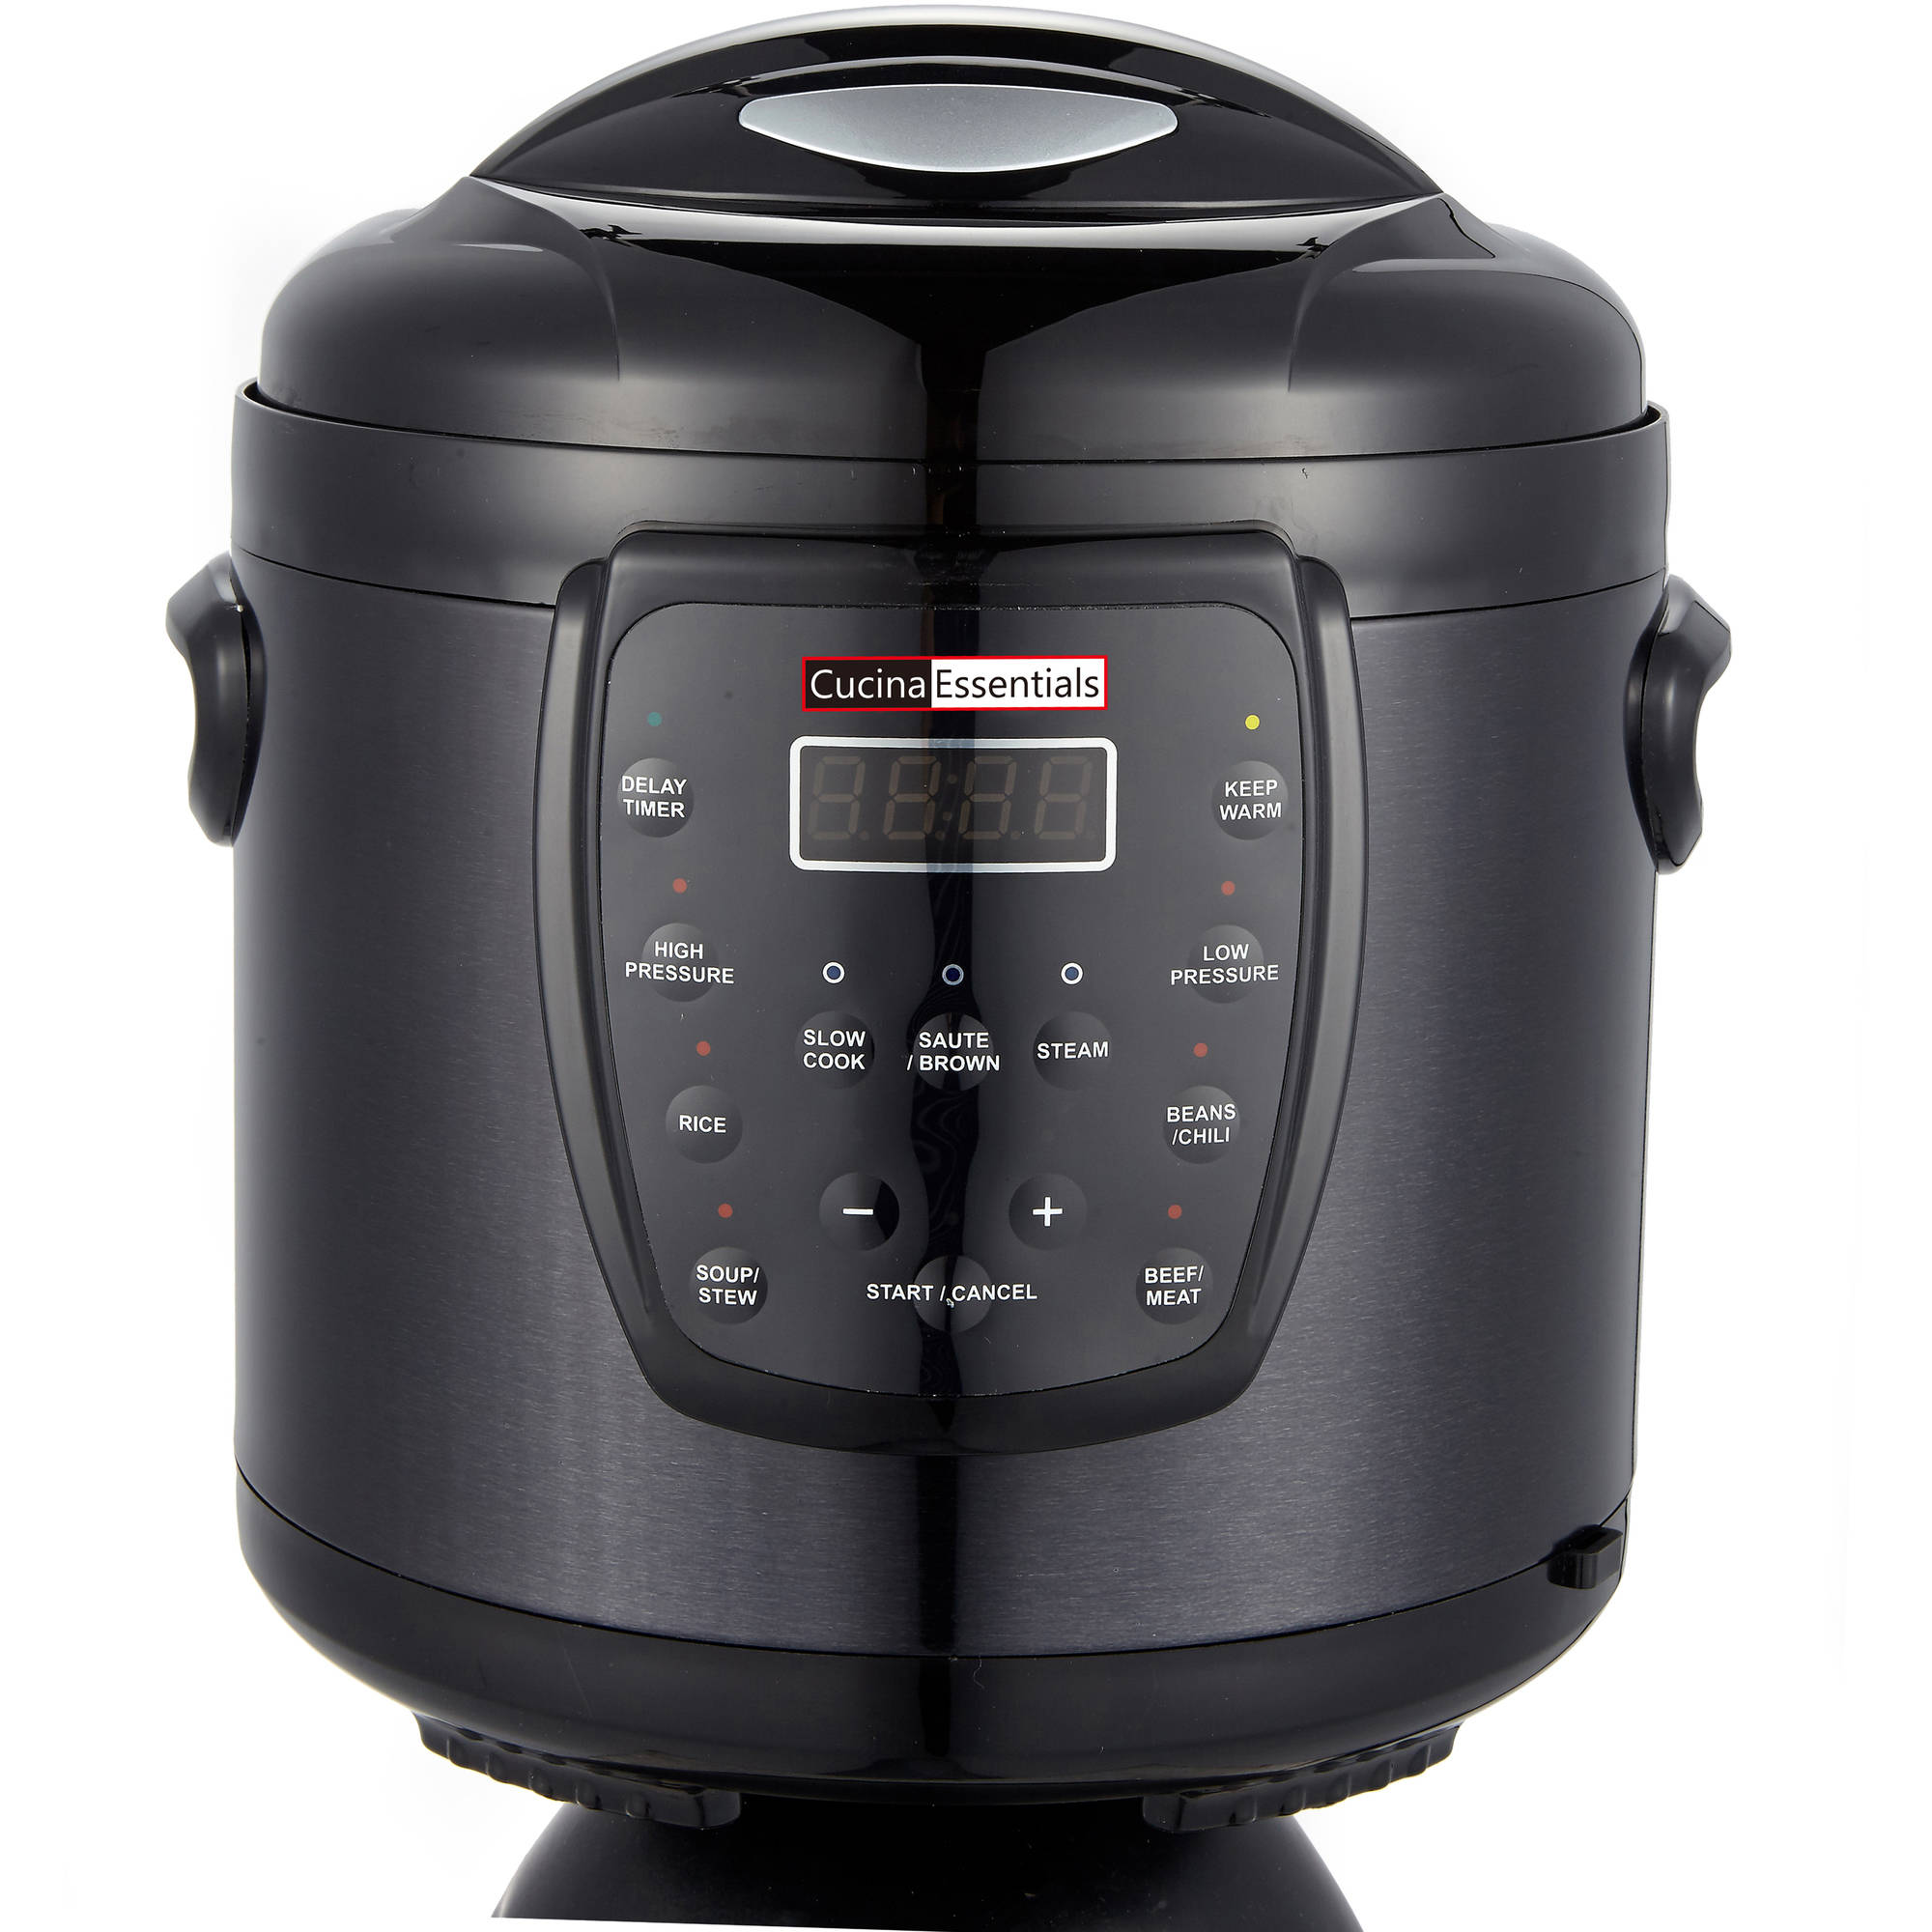 Cucina Essentials Electric Multi-Cooker